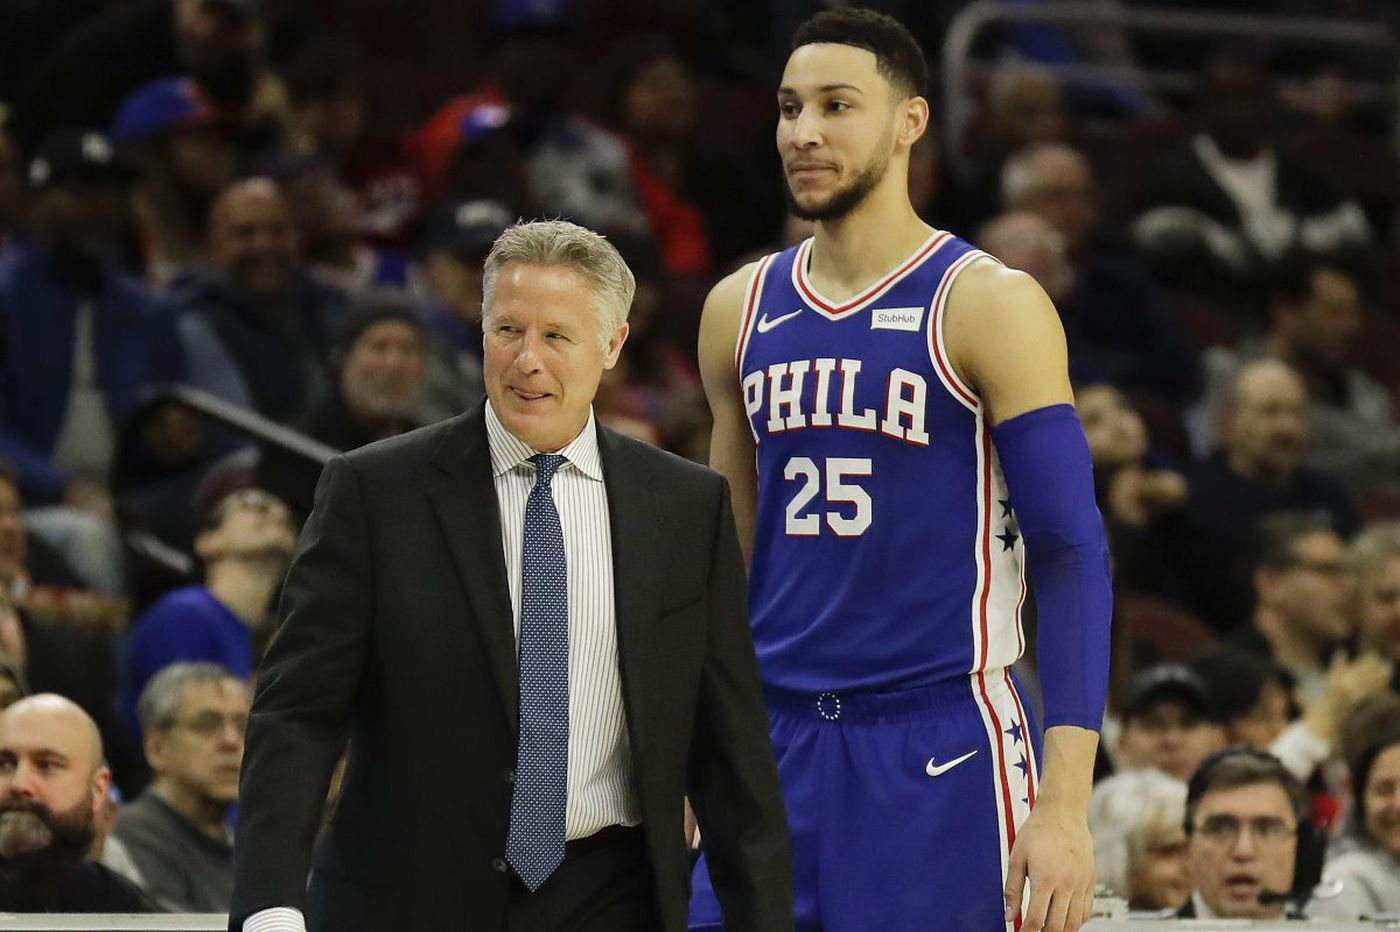 Sixers' coach Brett Brown is mulling Ben Simmons' career path